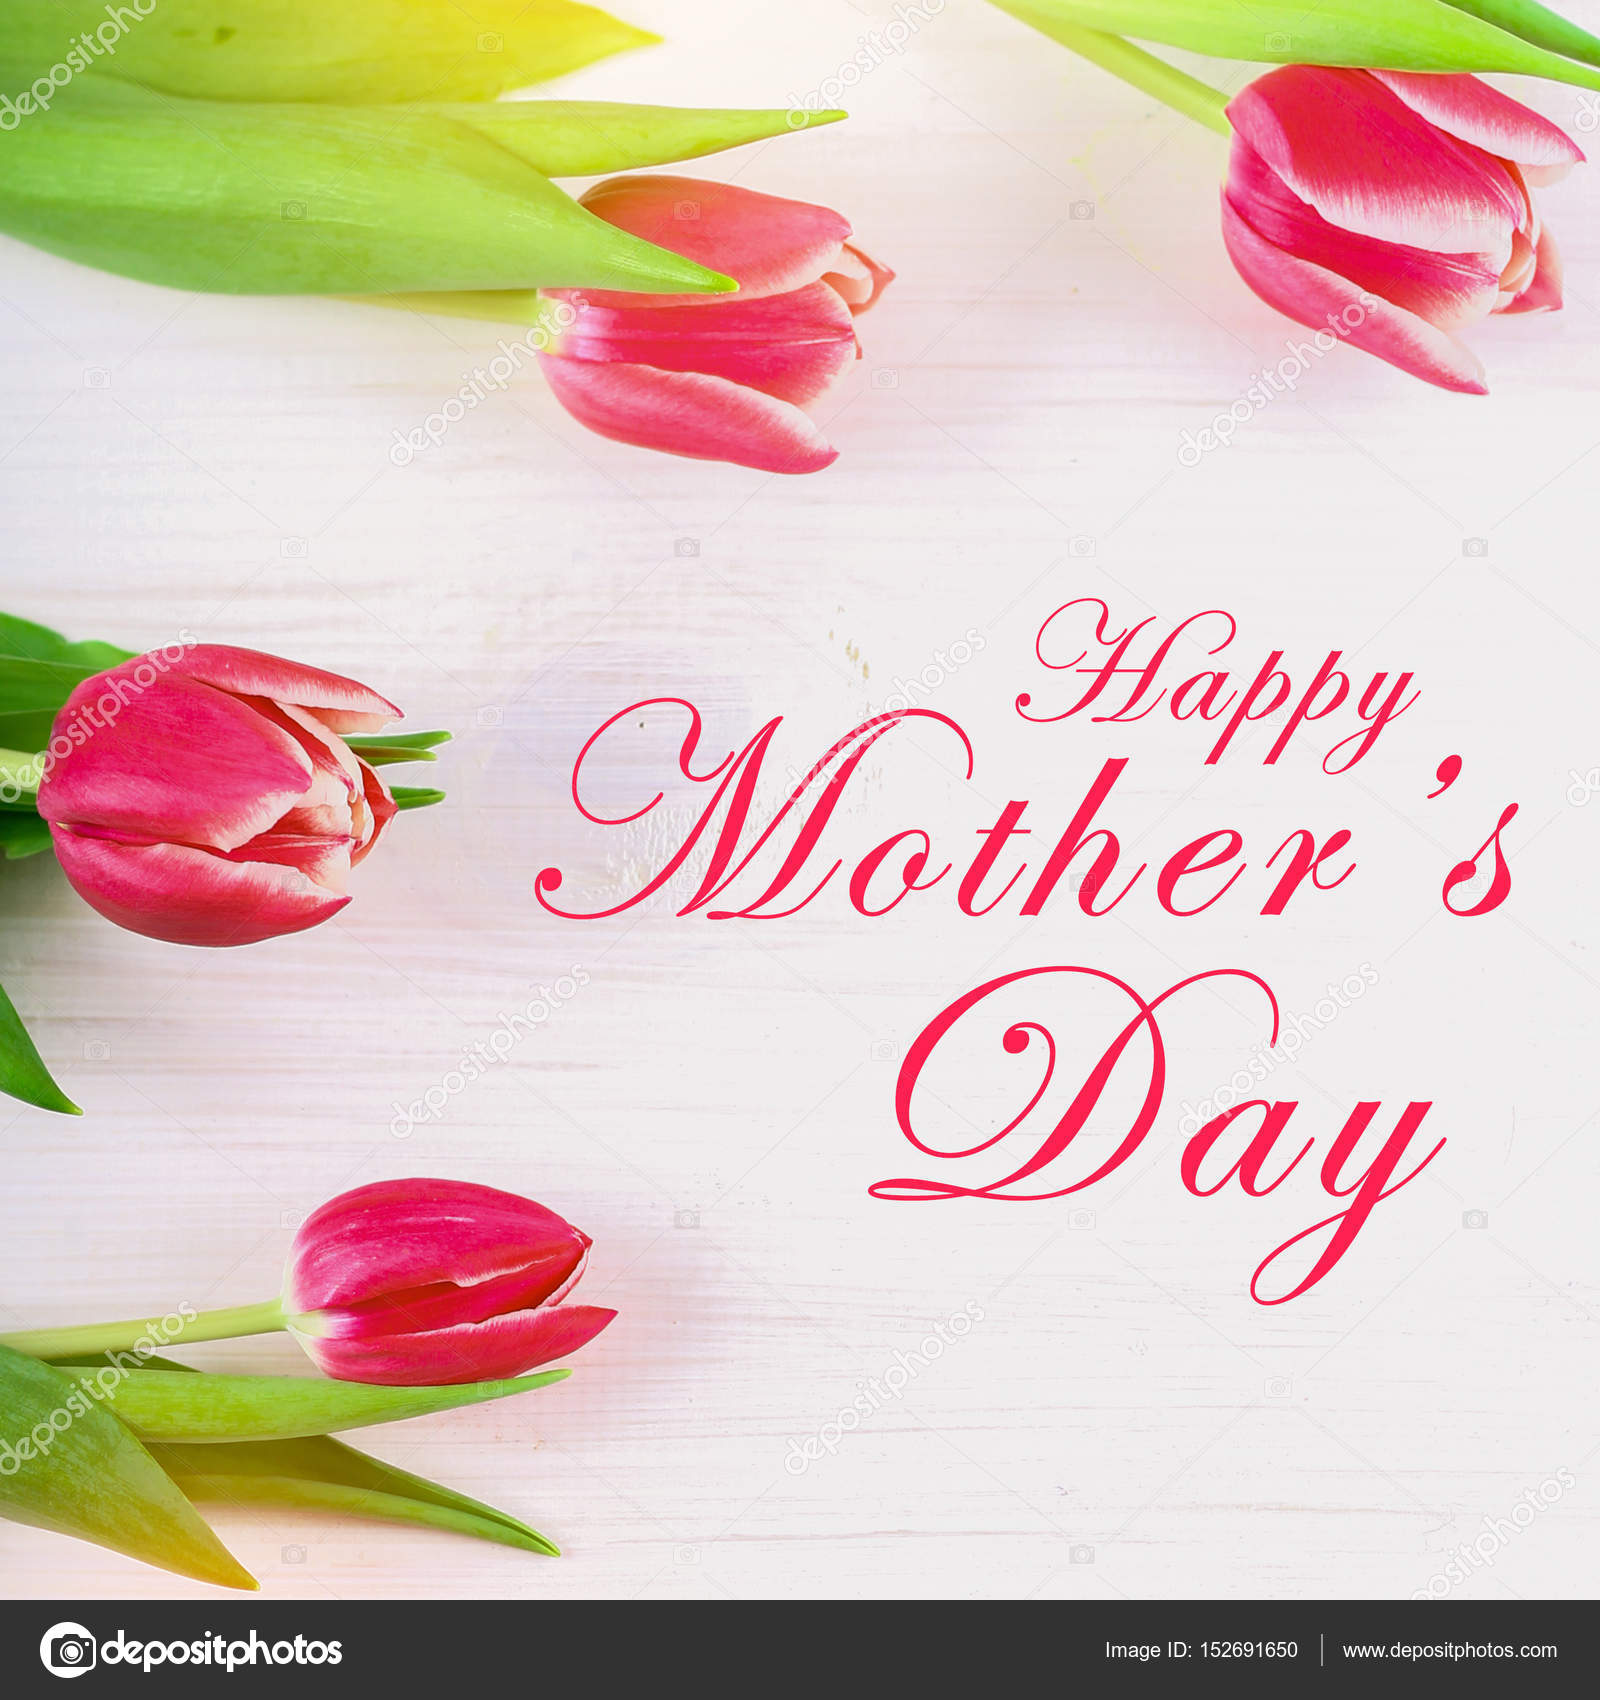 Happy mothers day text sign on pink tulips on white rustic wooden happy mothers day text sign on pink tulips on white rustic wooden background greeting card kristyandbryce Choice Image